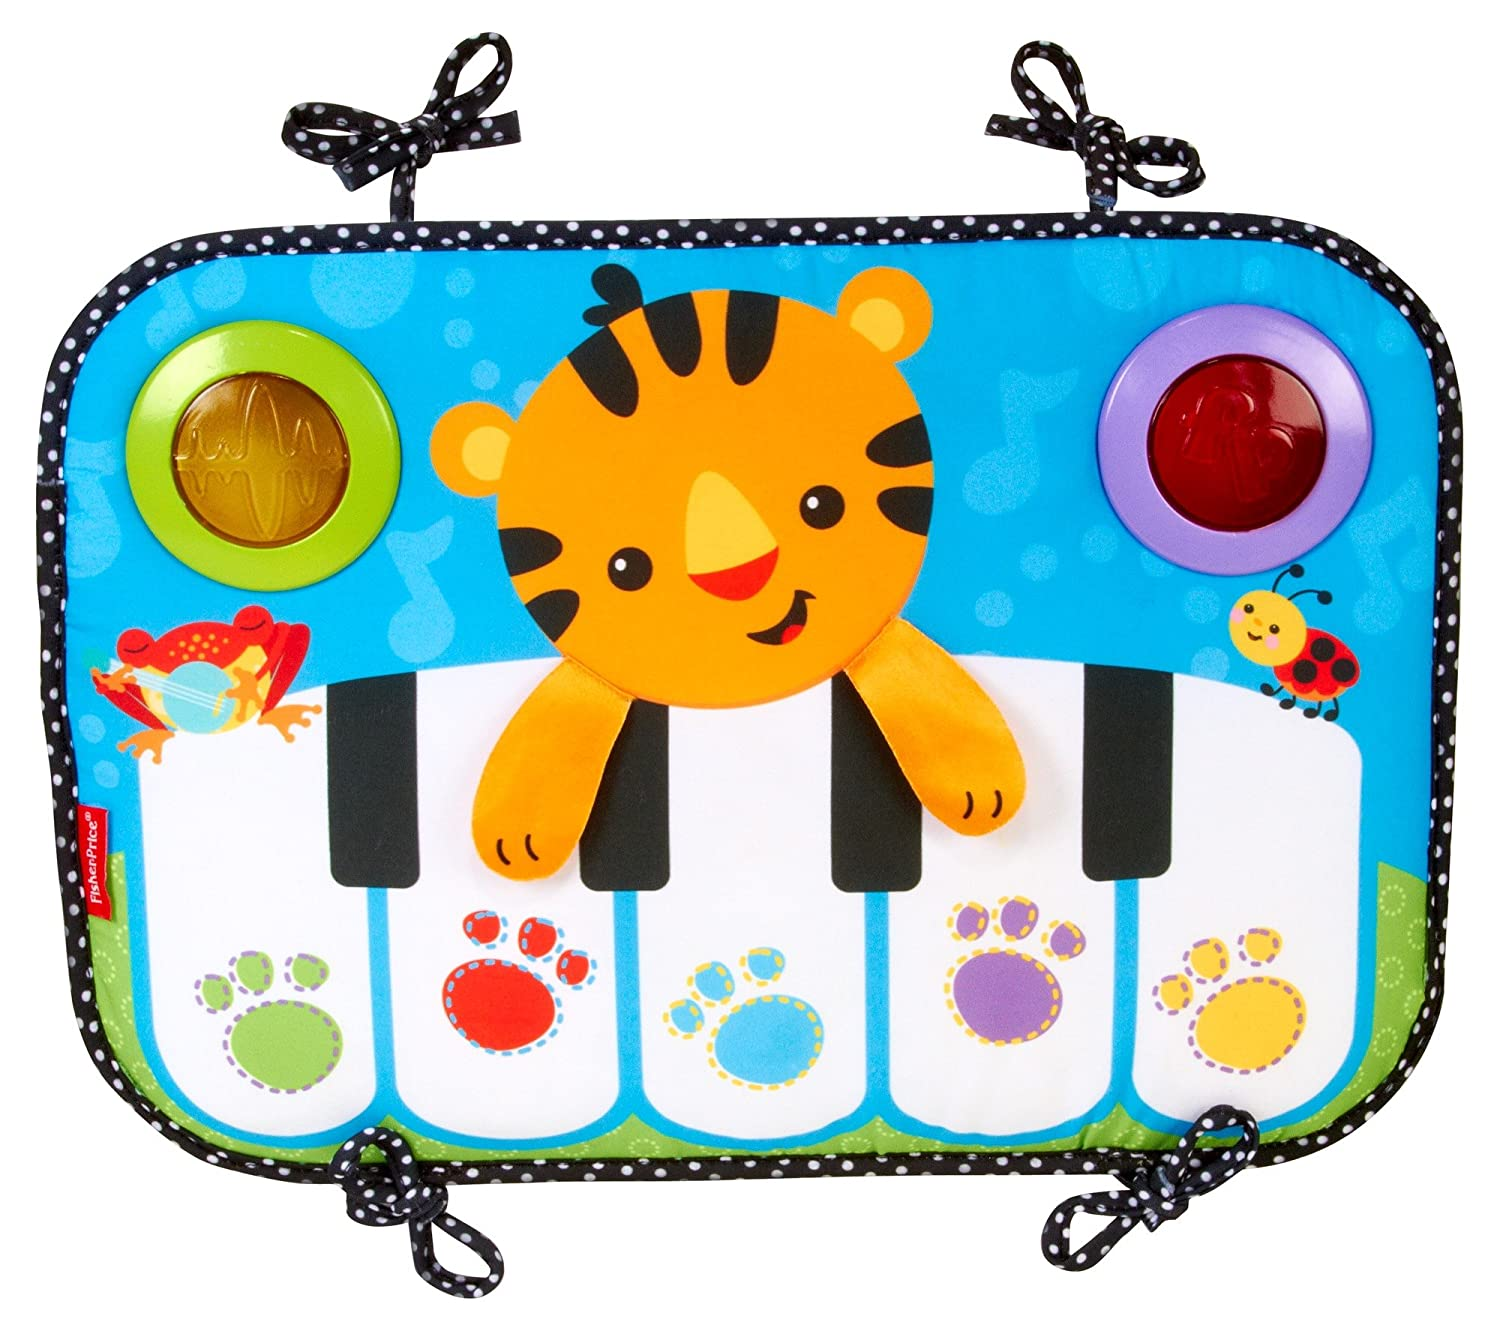 Fisher Price Piano pataditas Mattel CCW